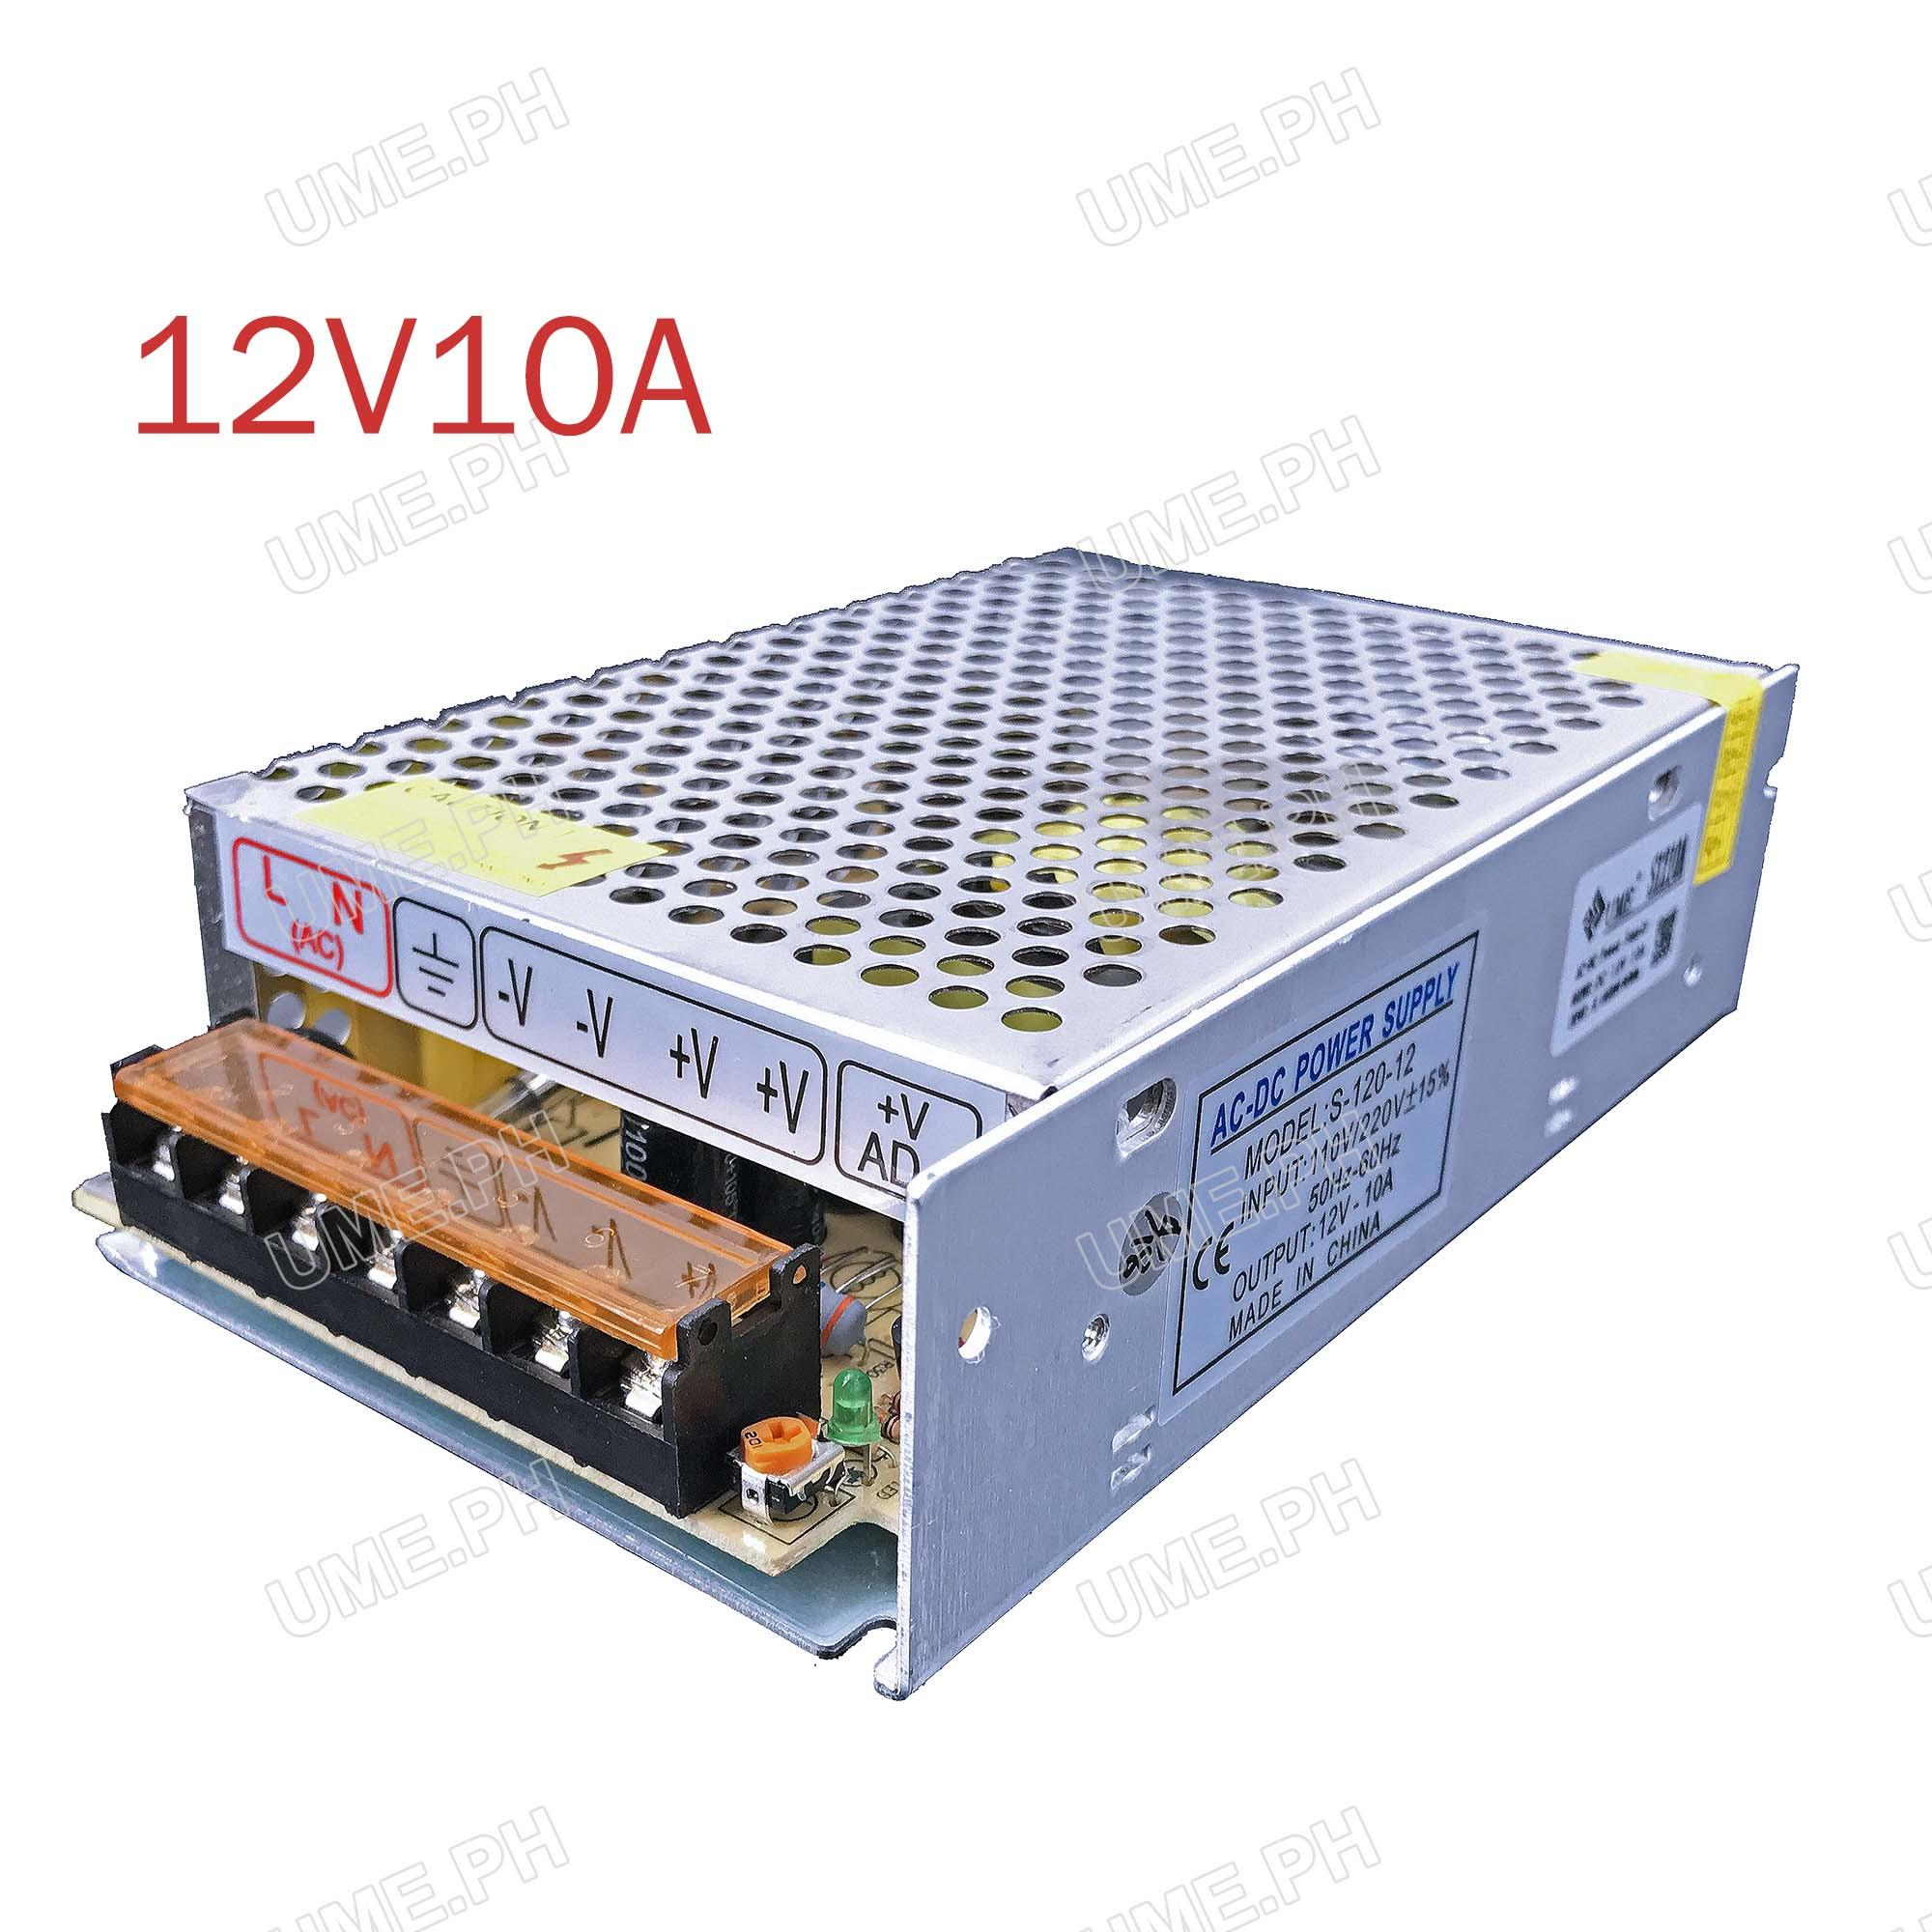 Pc Power Supply For Sale Computer Prices Brands 138v 40a Stabilized Ume Cctv Centralize Adapter Dc 12v10a S1210a